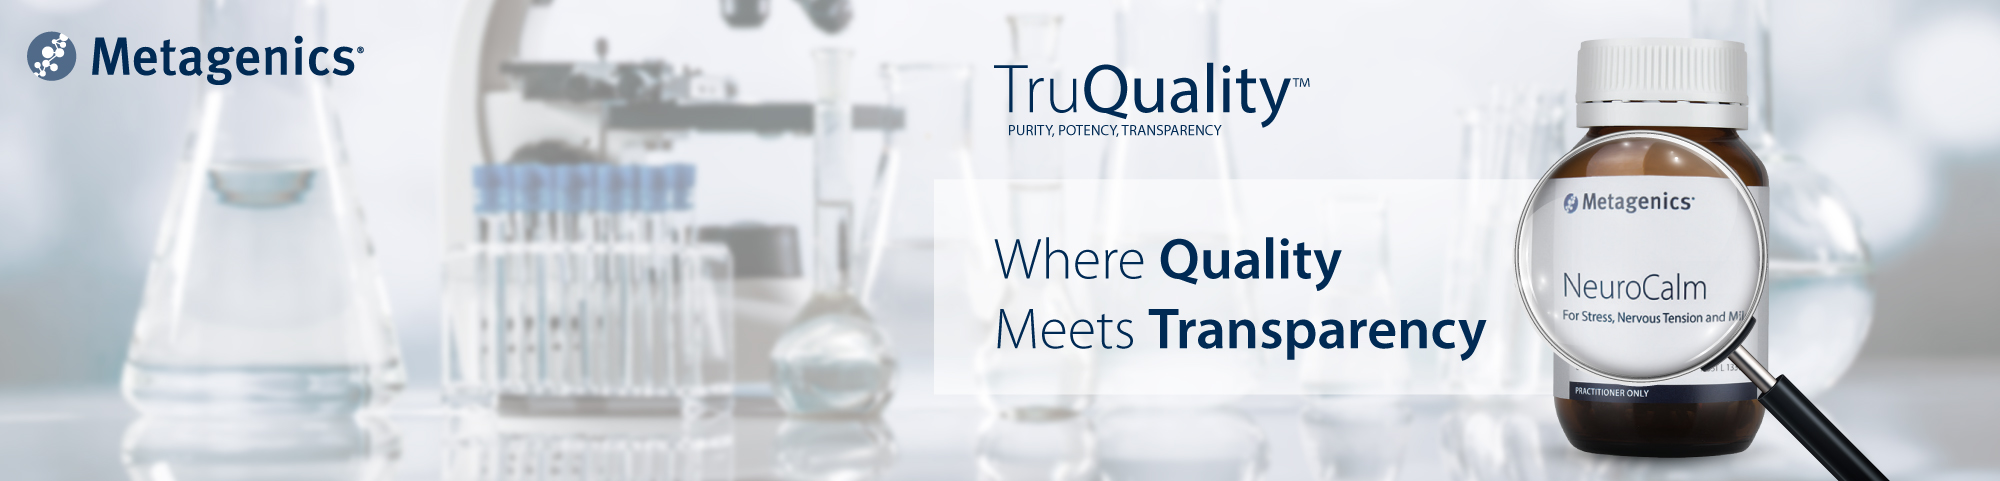 TruQuality Website Banner